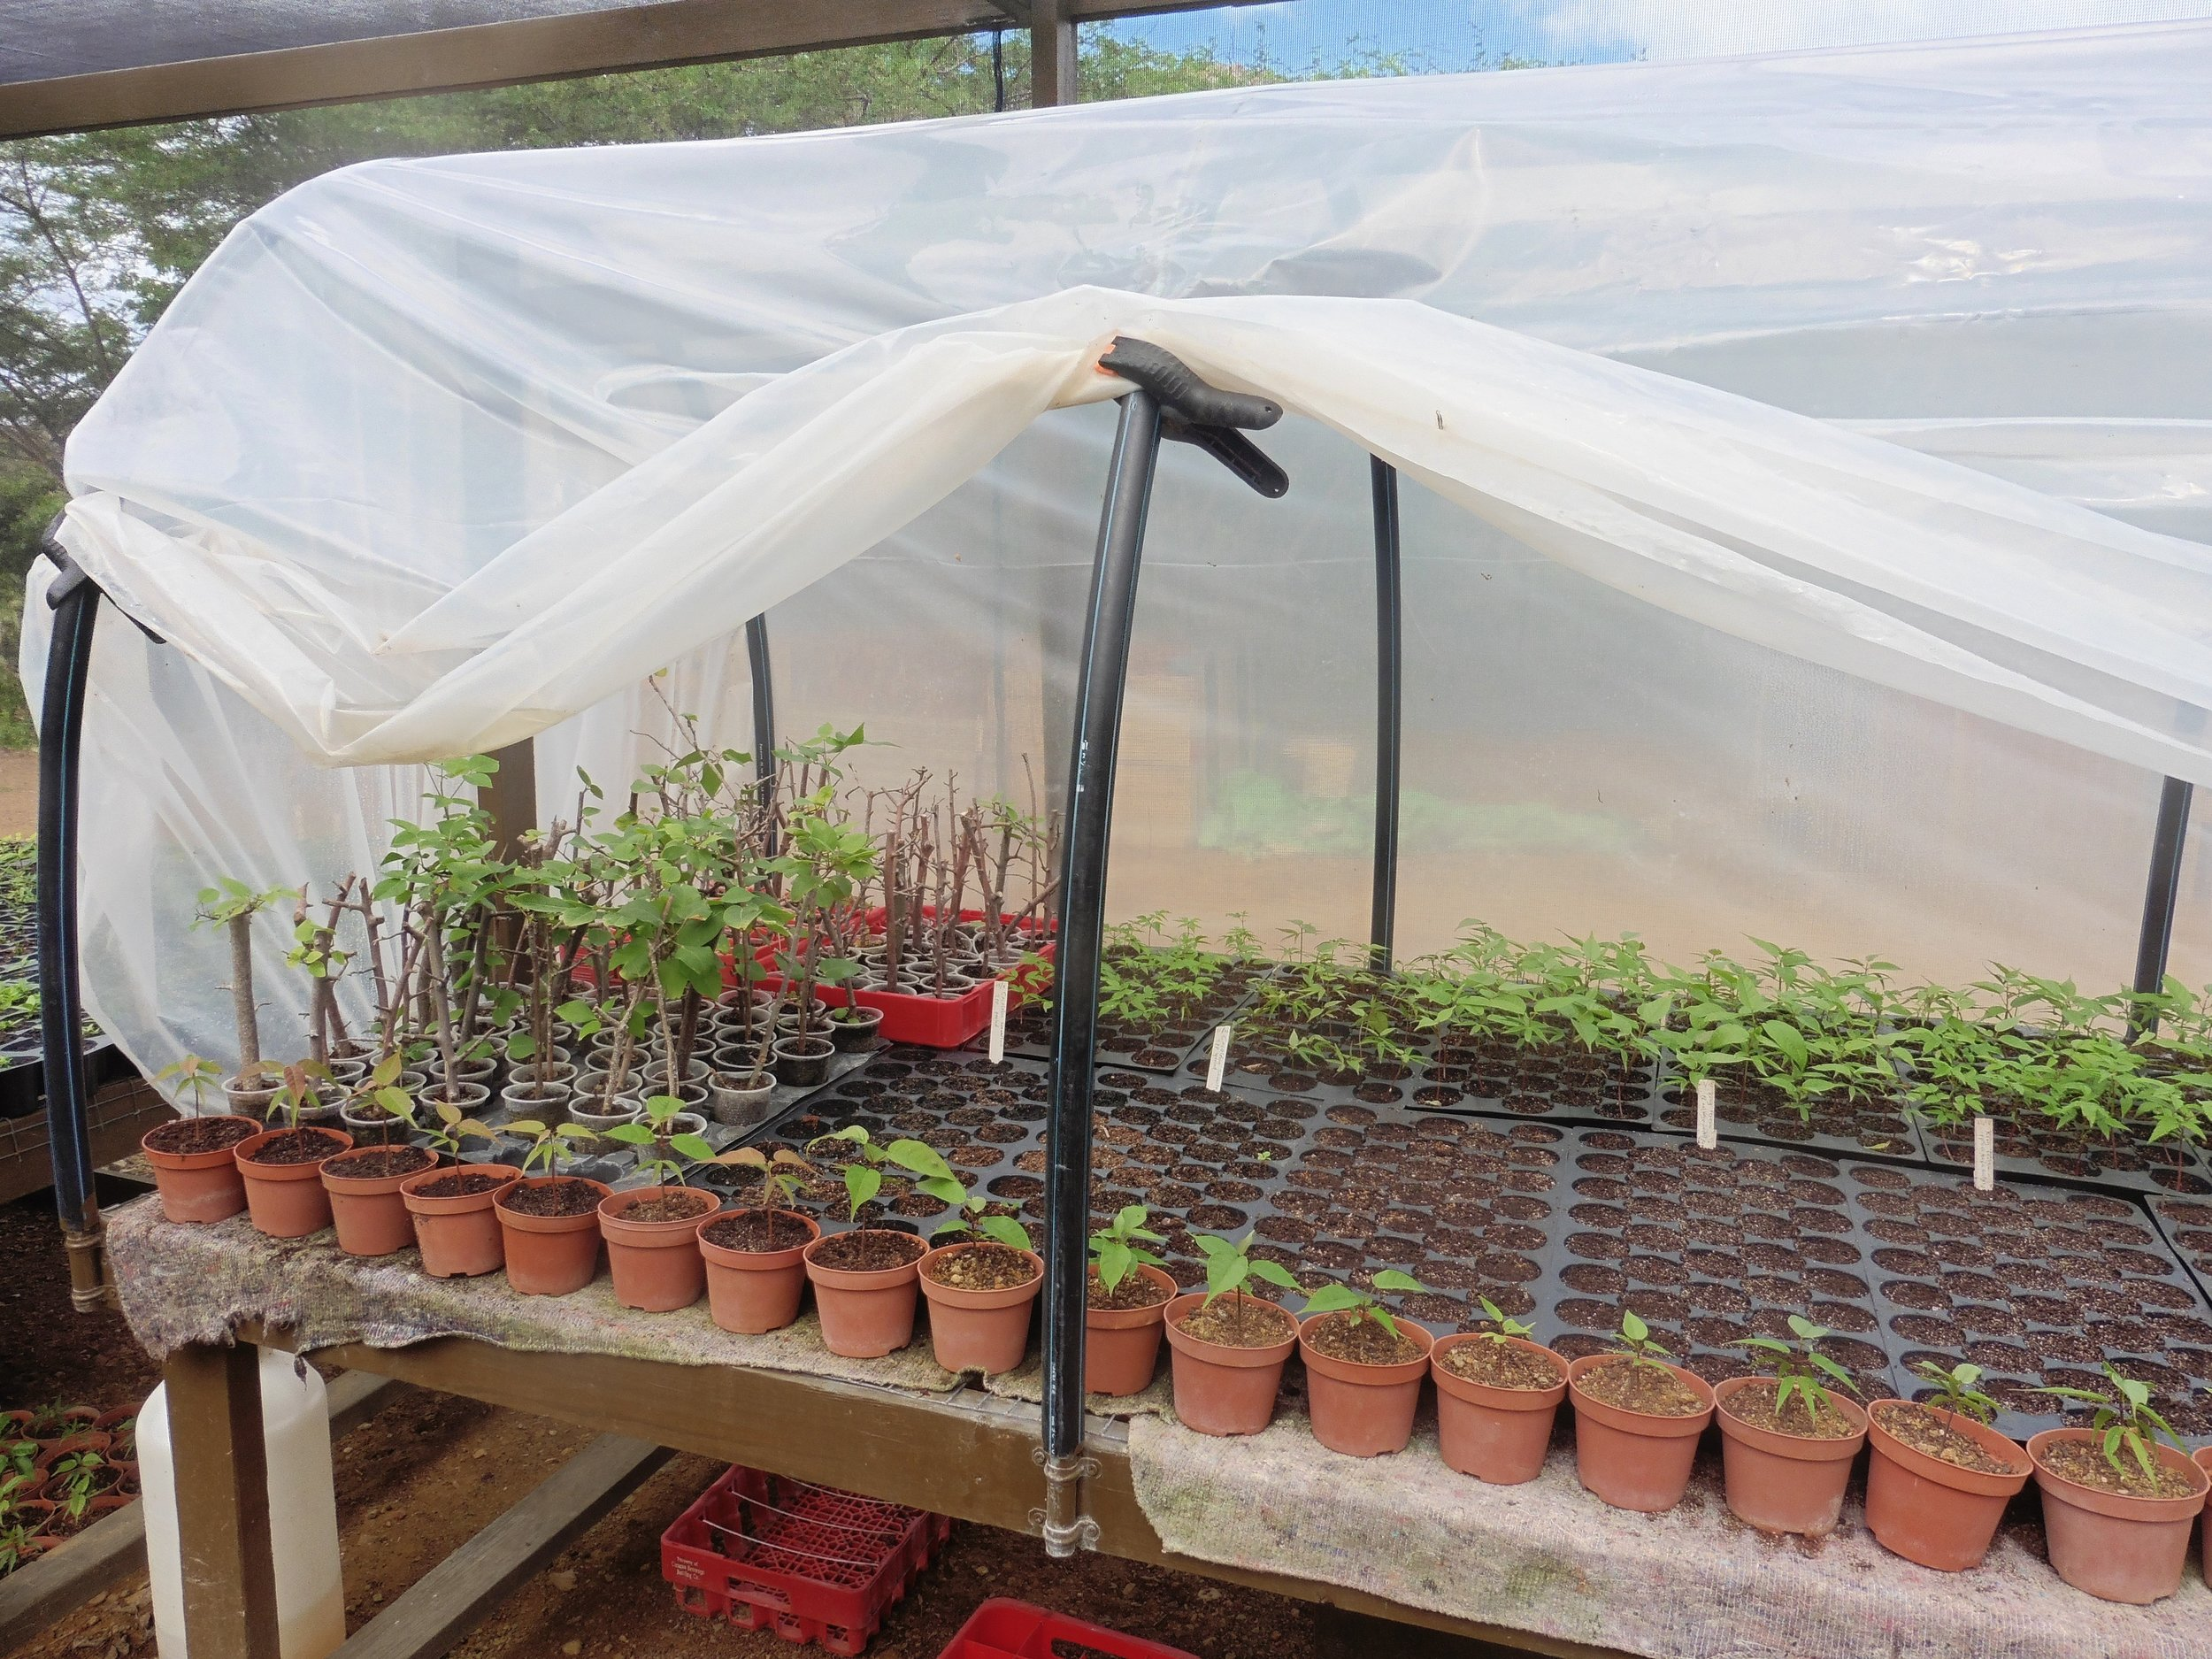 Cuttings, germinating seeds, and collected seedlings can all benefit from the constant moisture of the mist house.